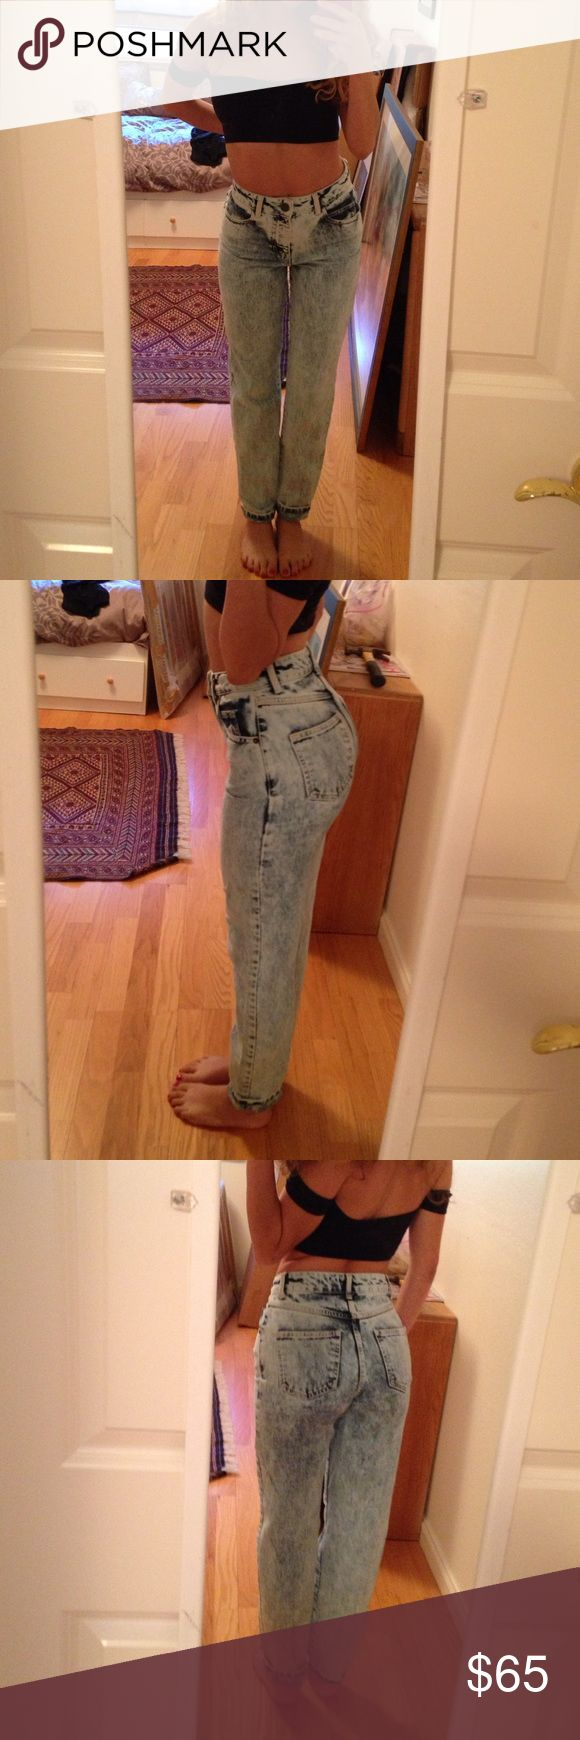 TOPSHOP Acid Wash Mom Jeans Super cute and comfortable. So cute, I just don't wear them enough :( like new! Topshop Jeans